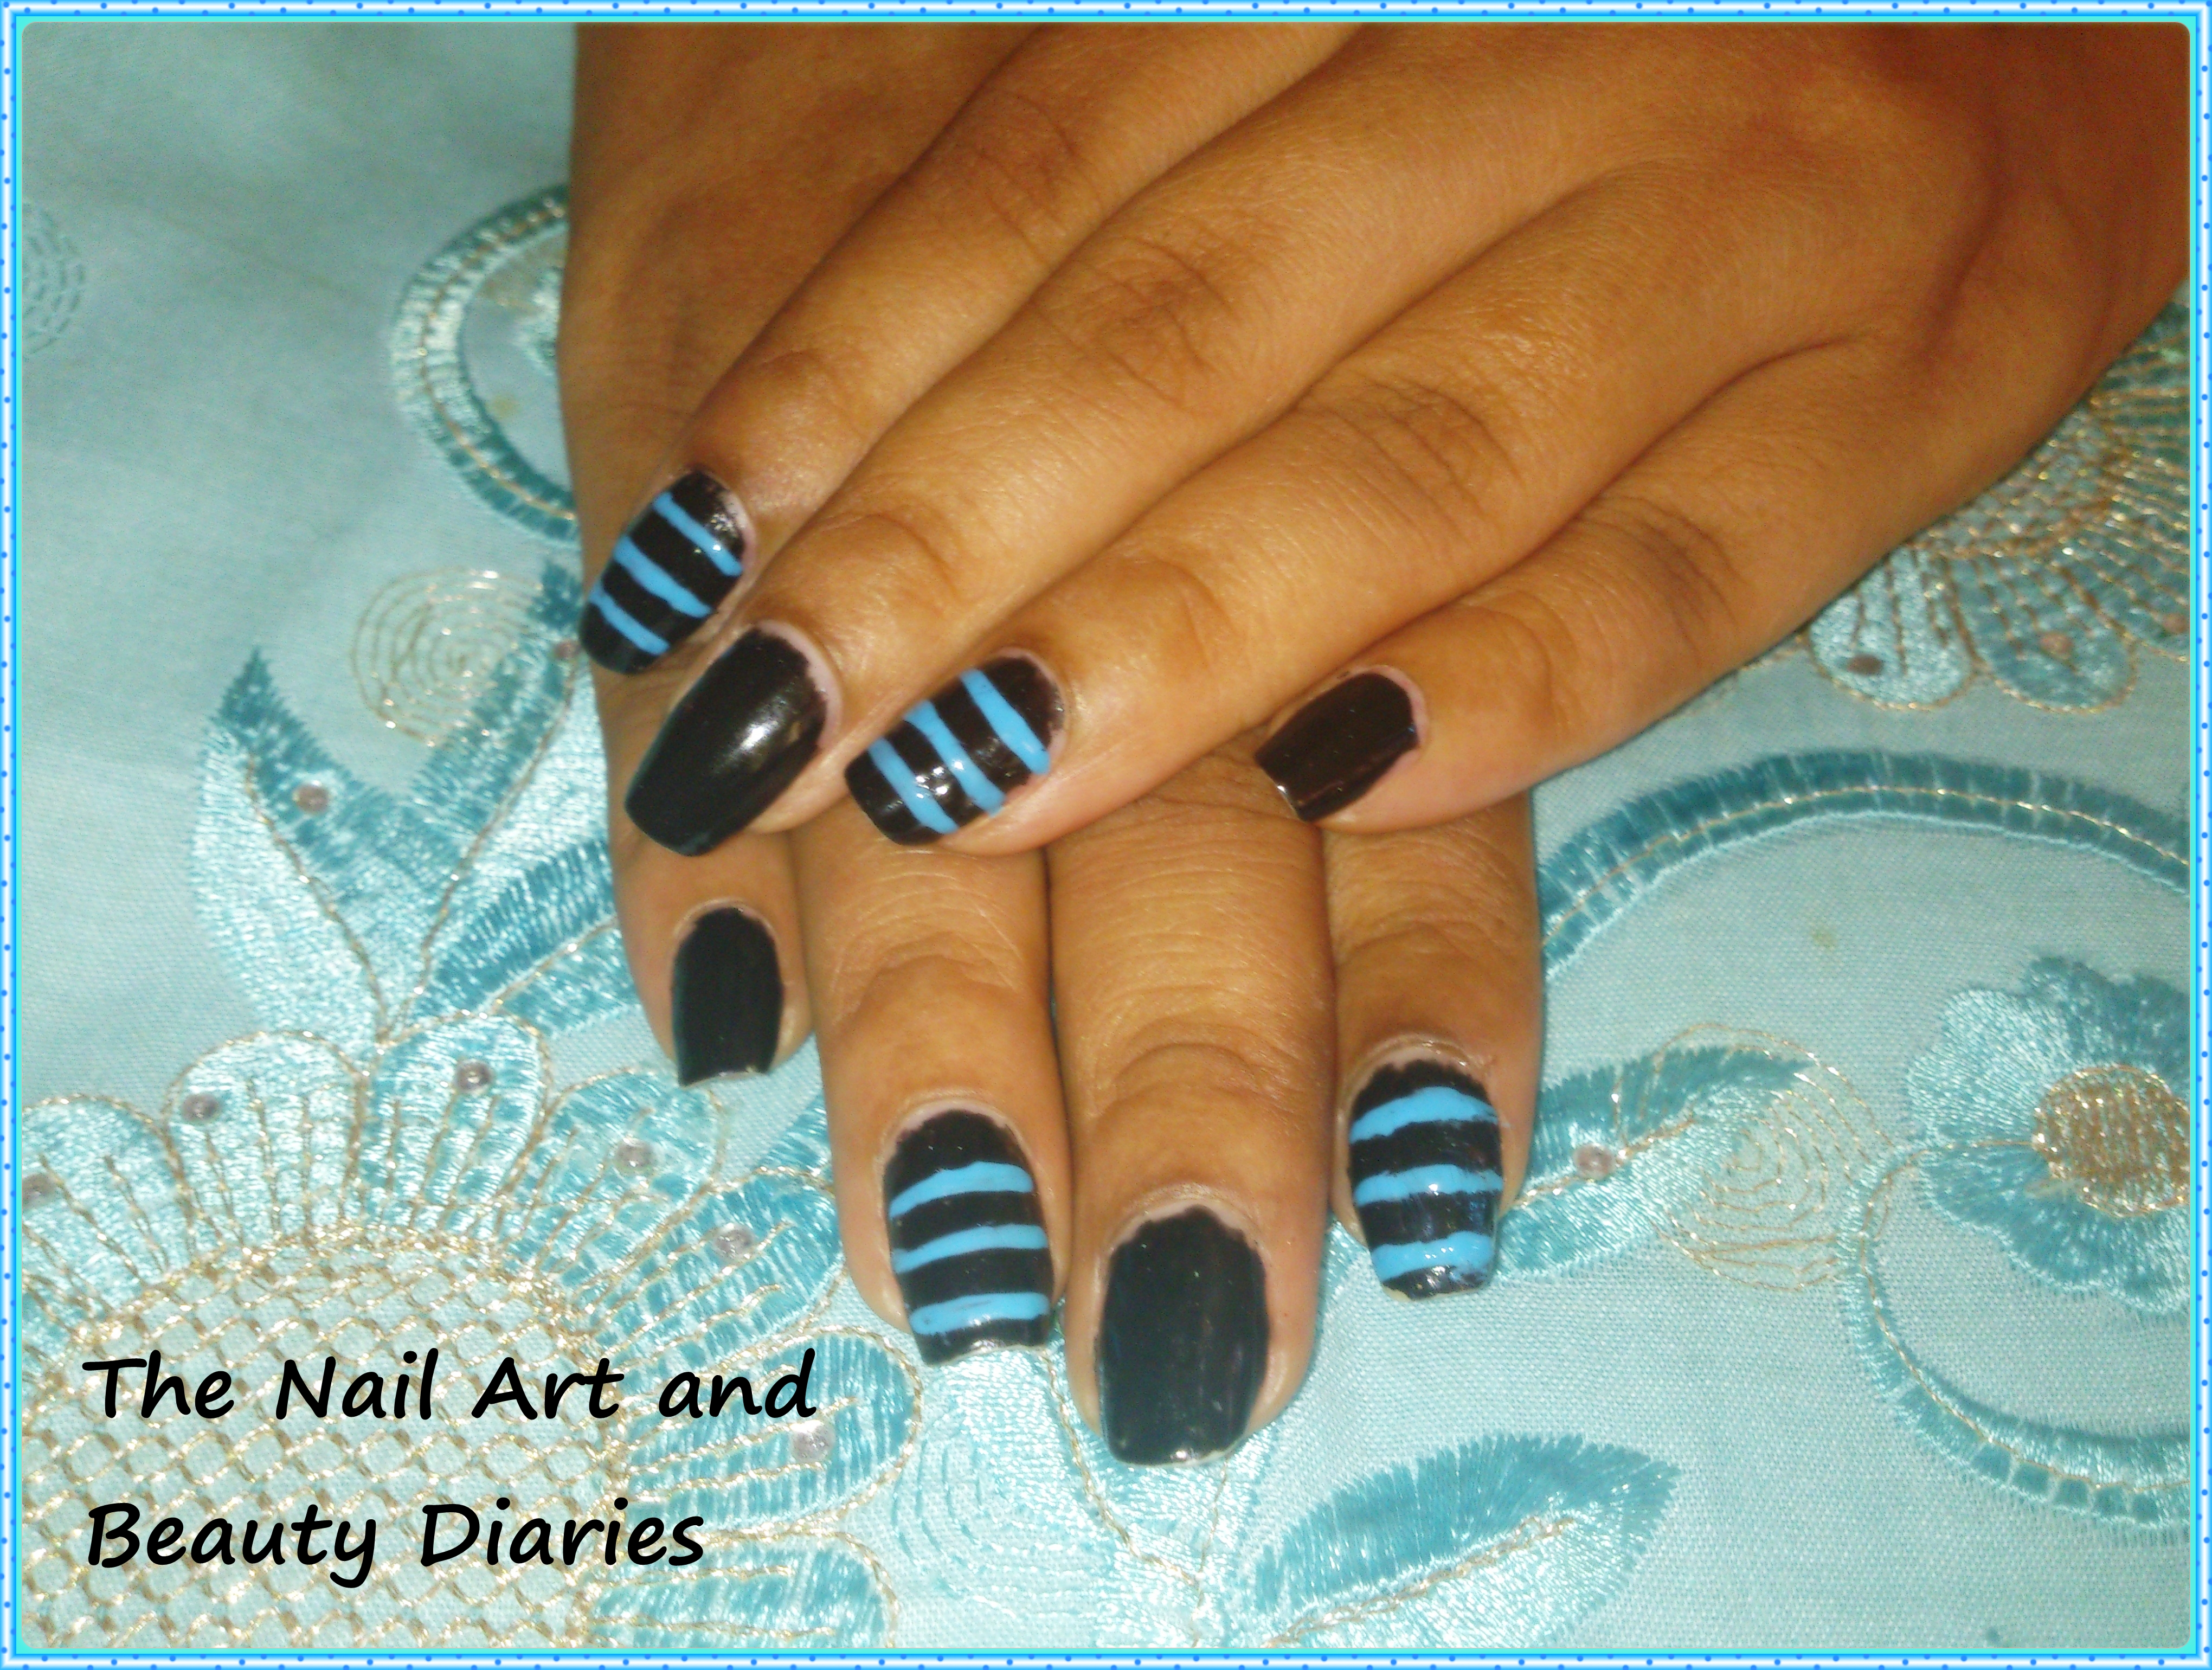 The men in black n blue nail art the nail art and beauty diaries men in black n blue nail art prinsesfo Image collections